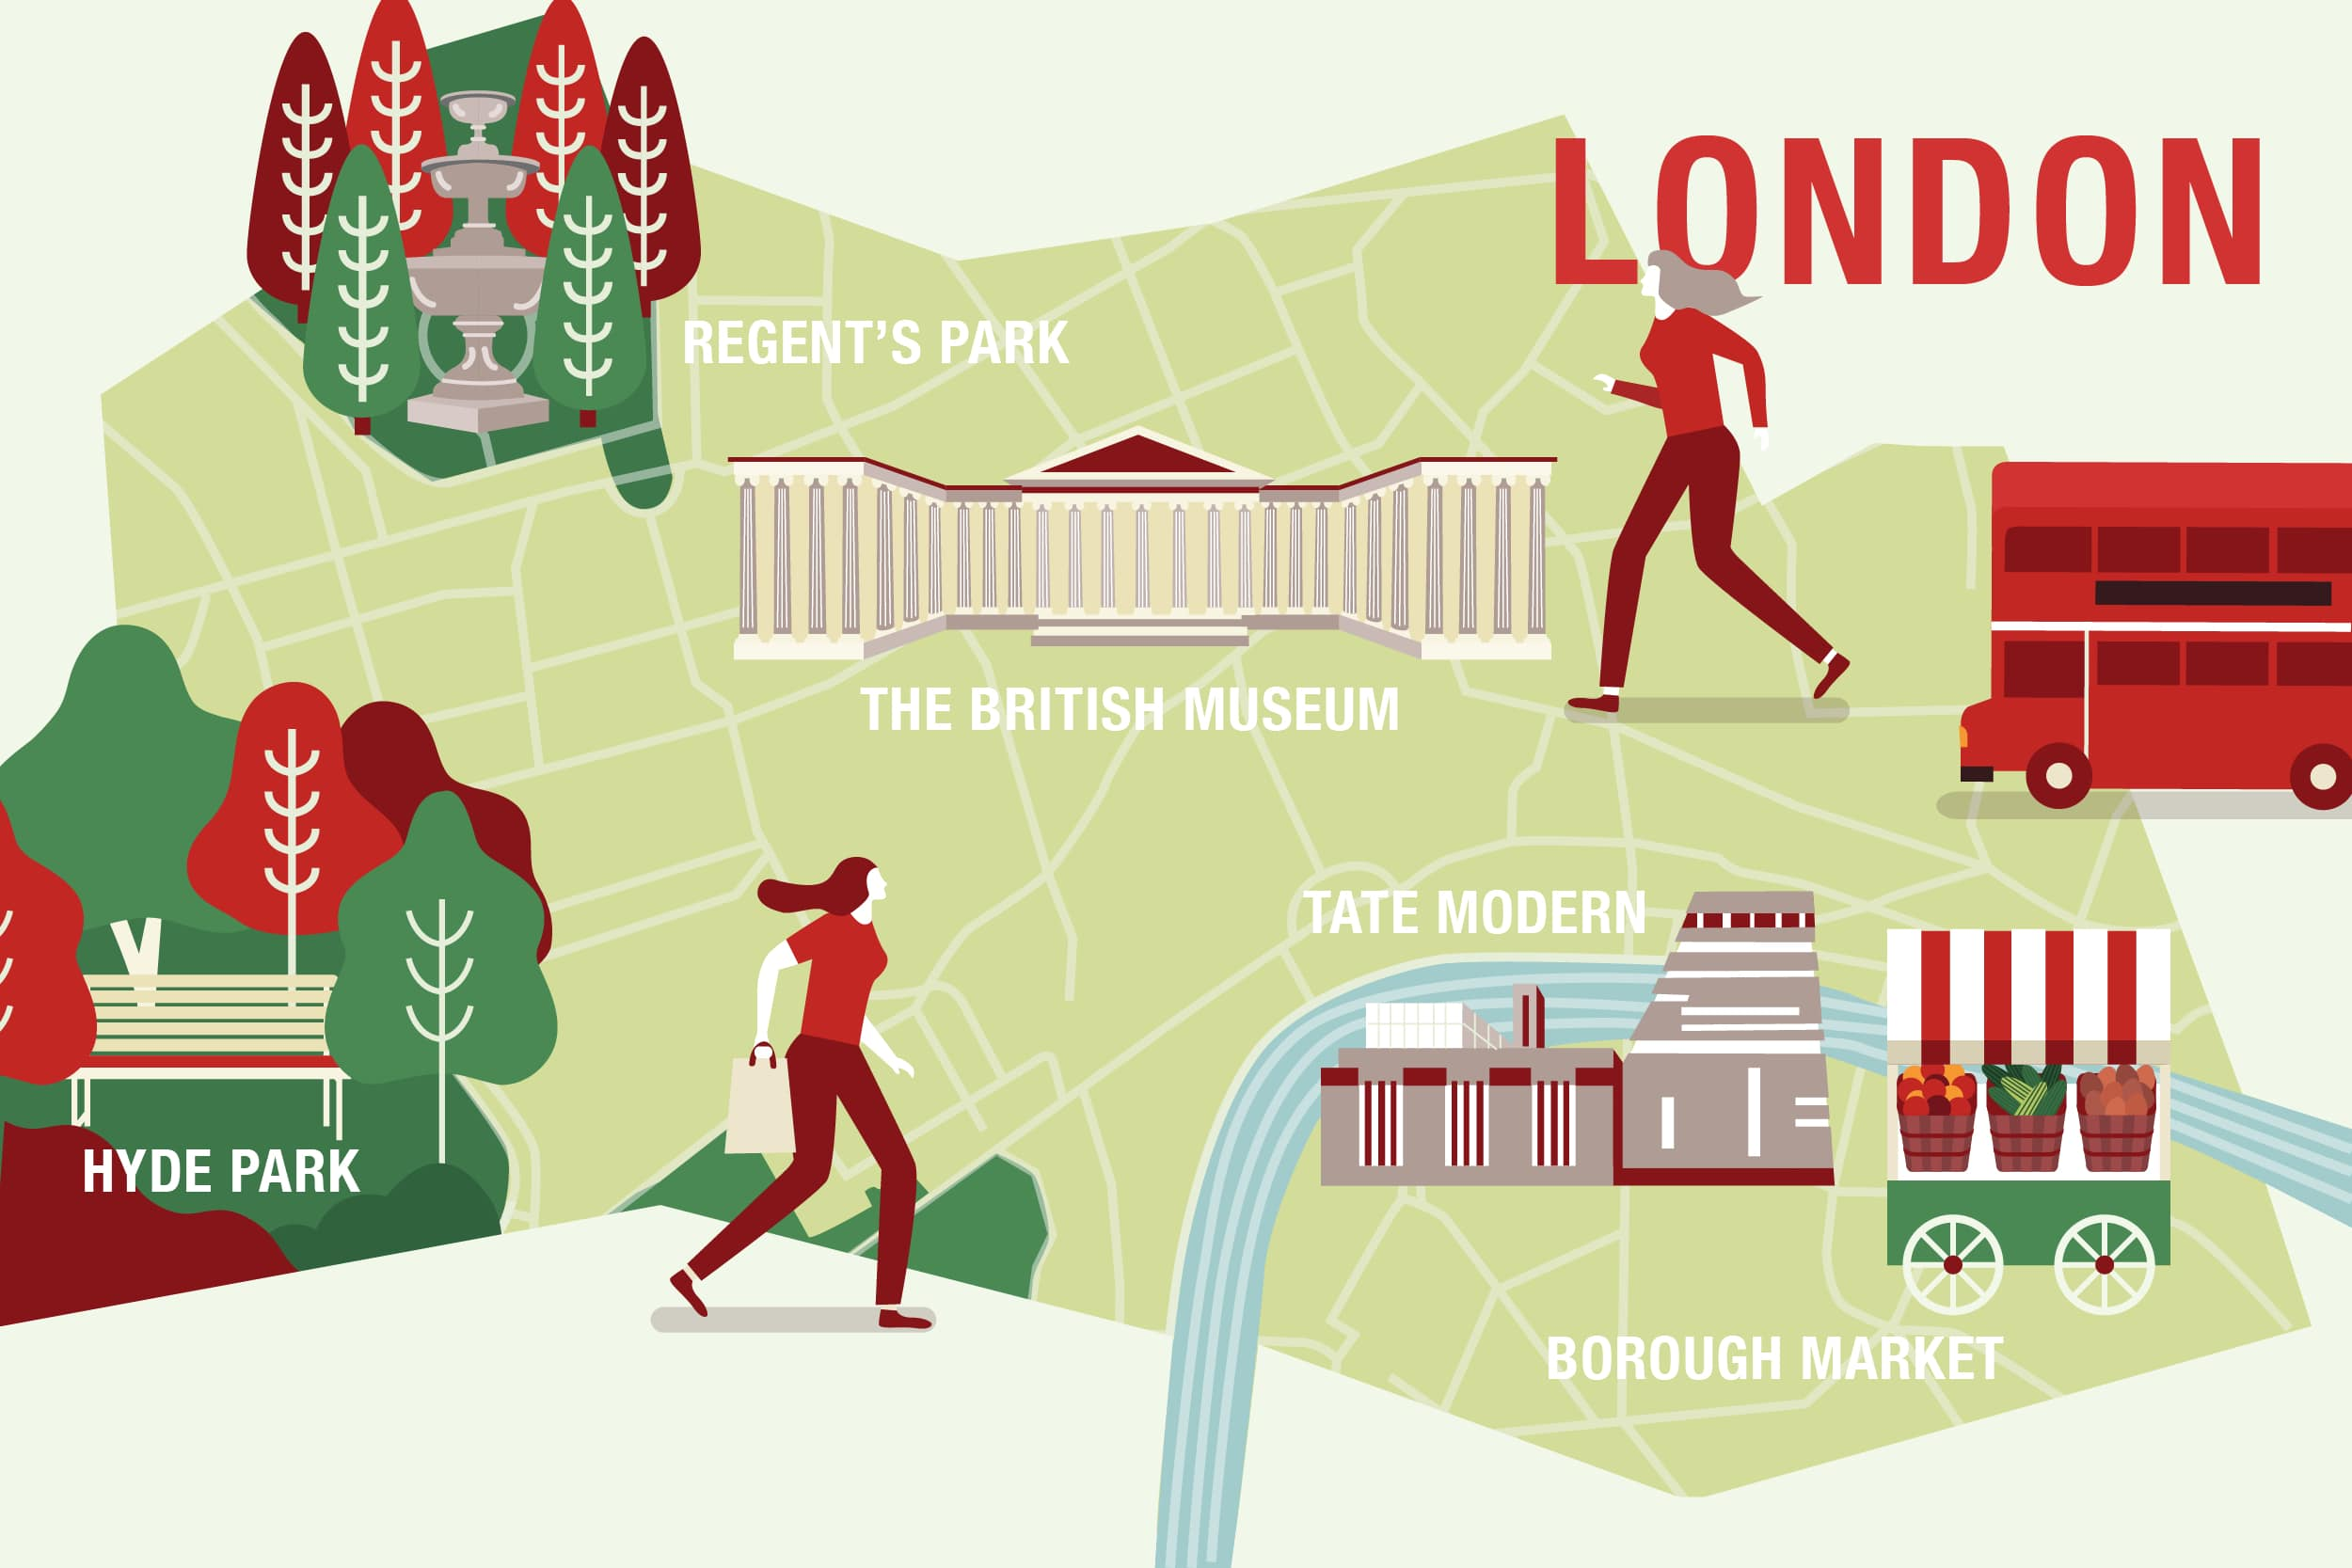 Free things to do in London infographic